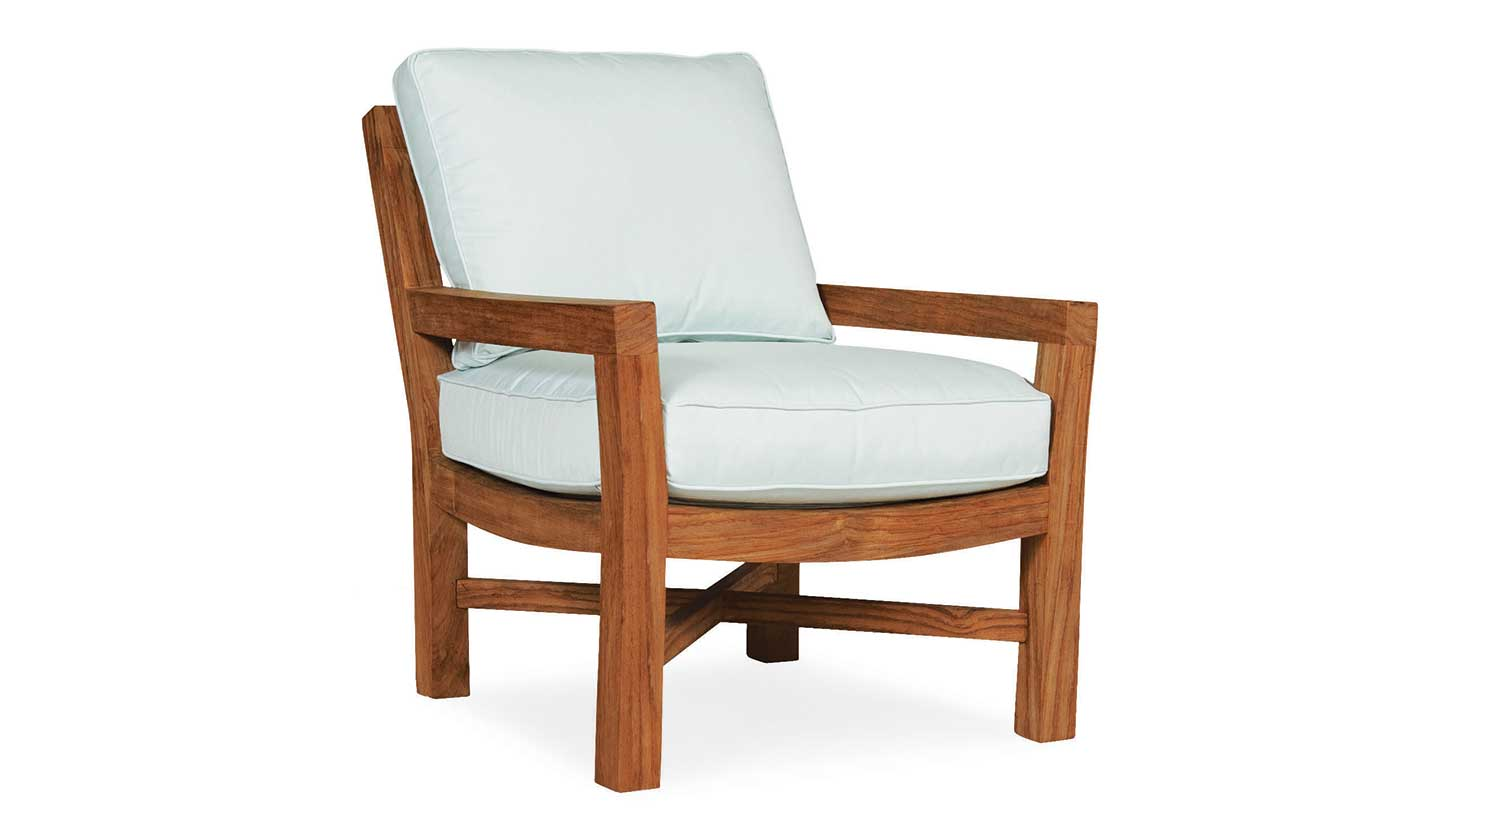 Circle furniture teak outdoor chair outdoor furniture for Outdoor furniture chairs